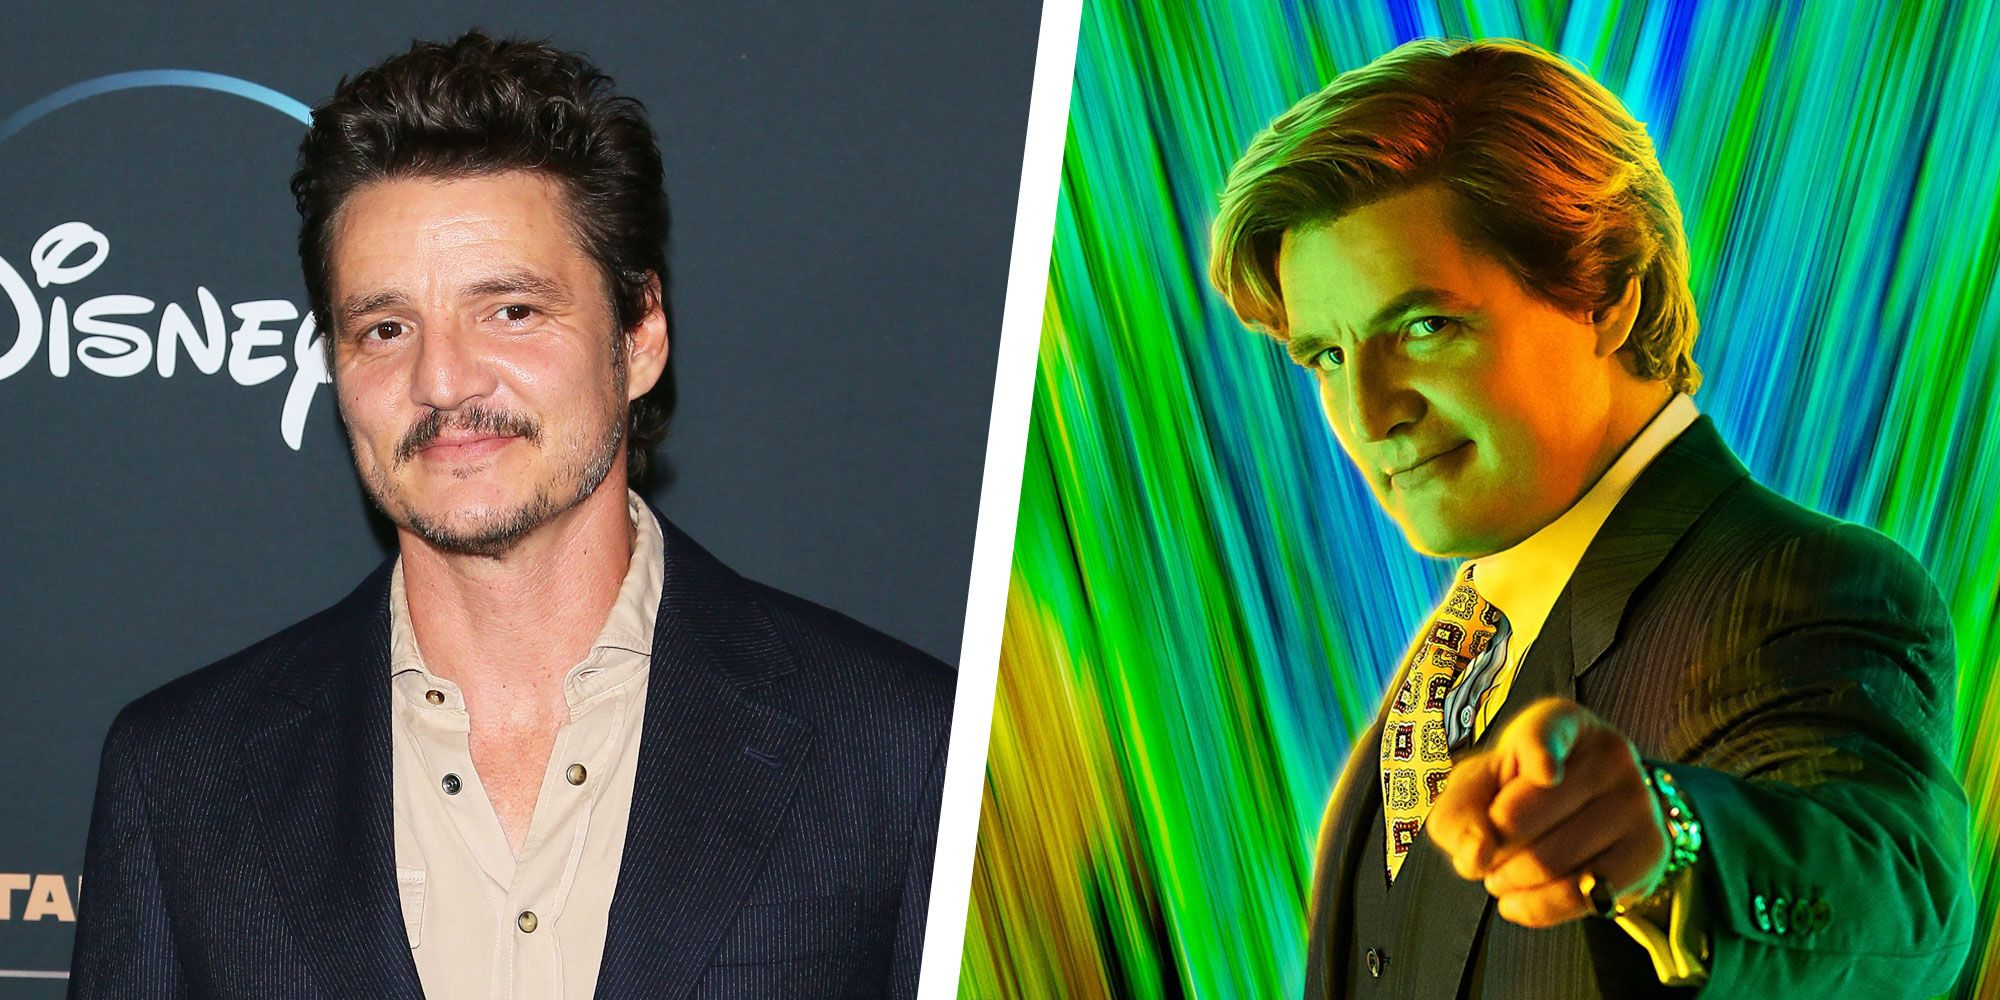 Pedro Pascal como Maxwell Lord. FOTO: https://www.menshealth.com/entertainment/a30168741/pedro-pascal-wonder-woman-1984-reactions/